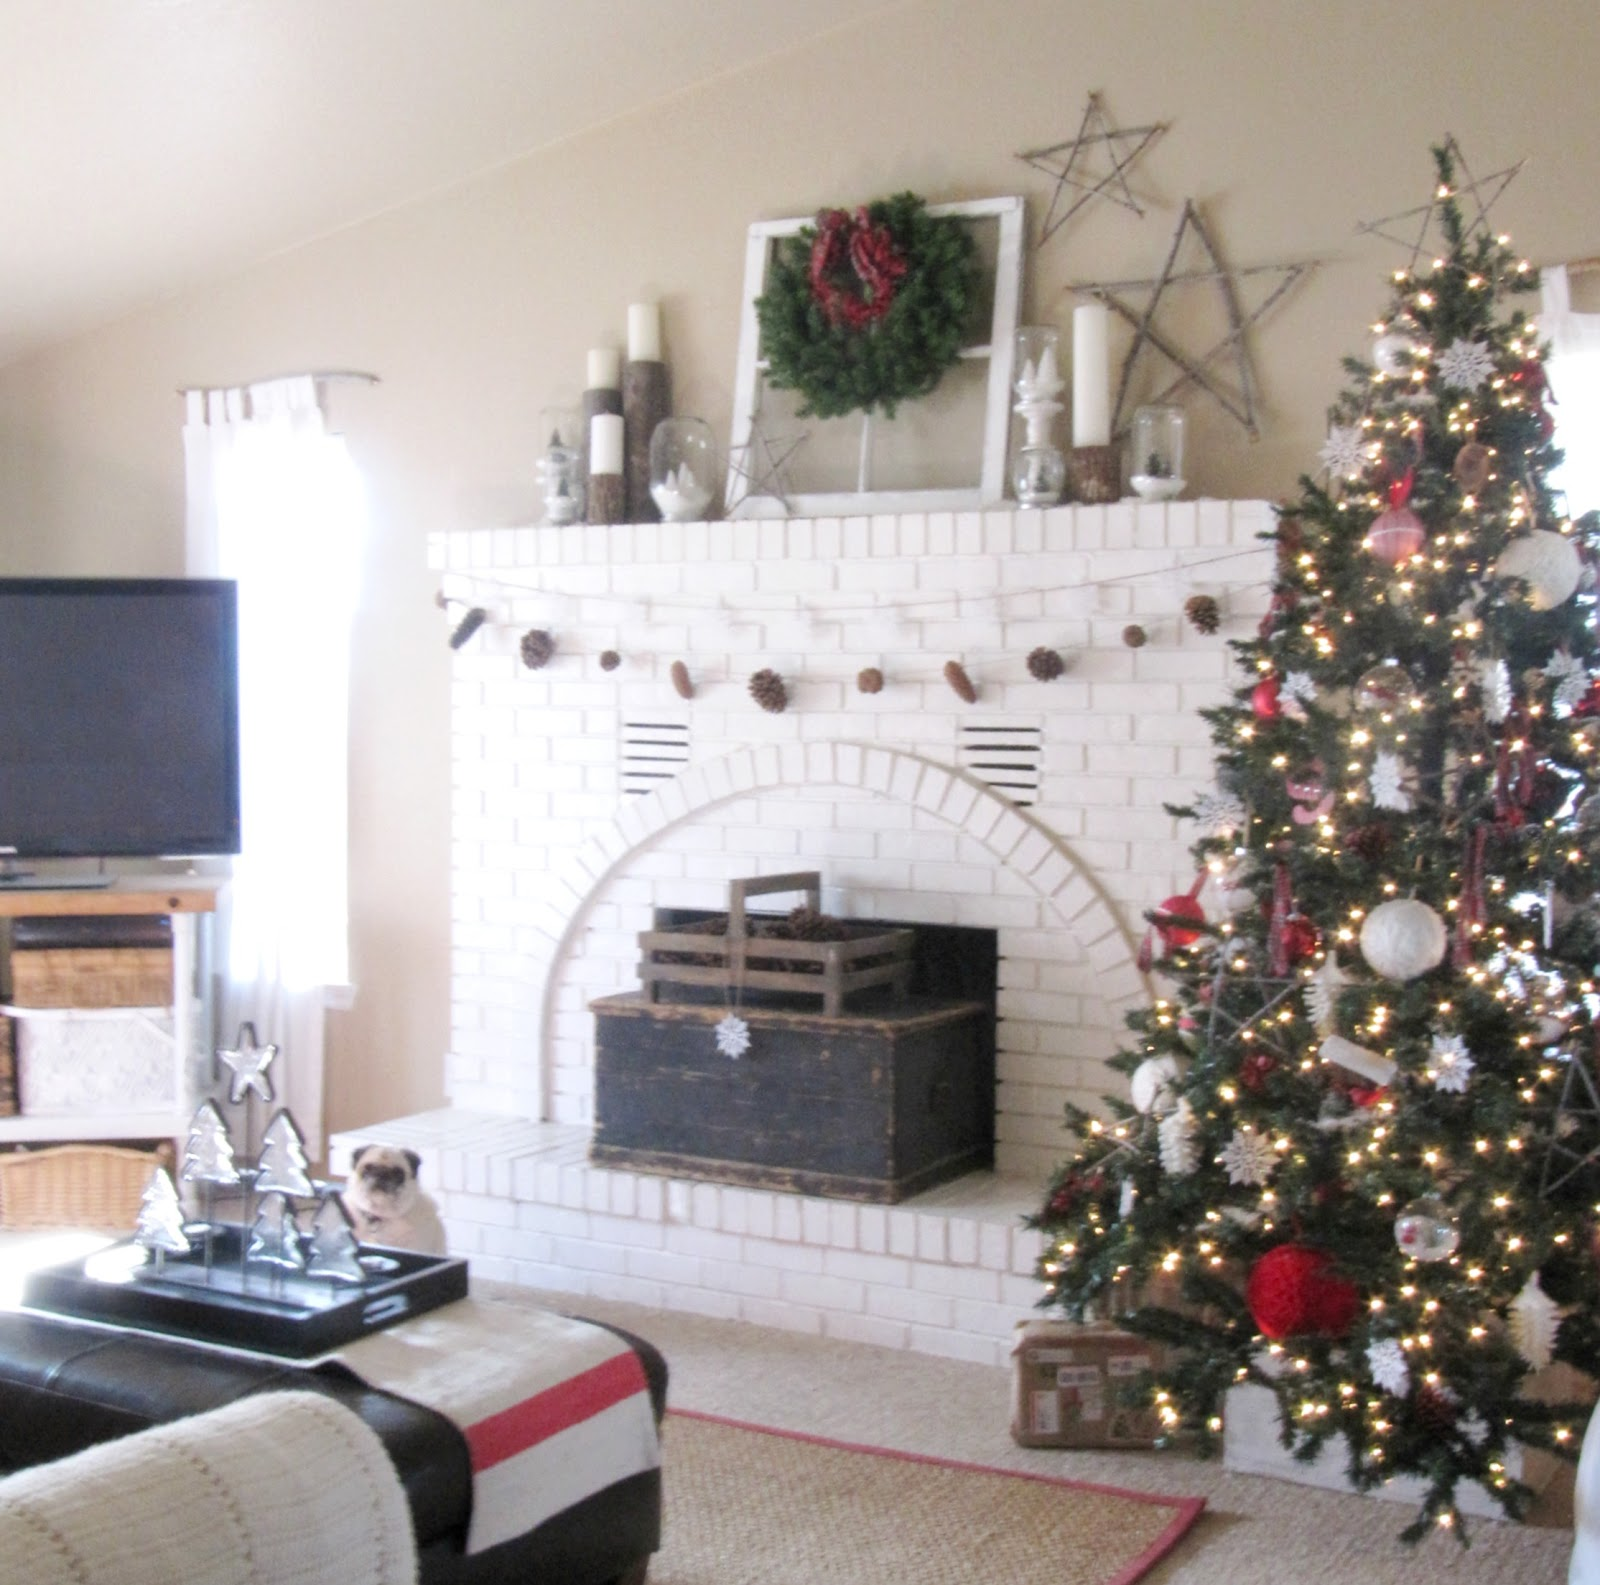 Red, White and Plaid Christmas Tree - The Wicker House